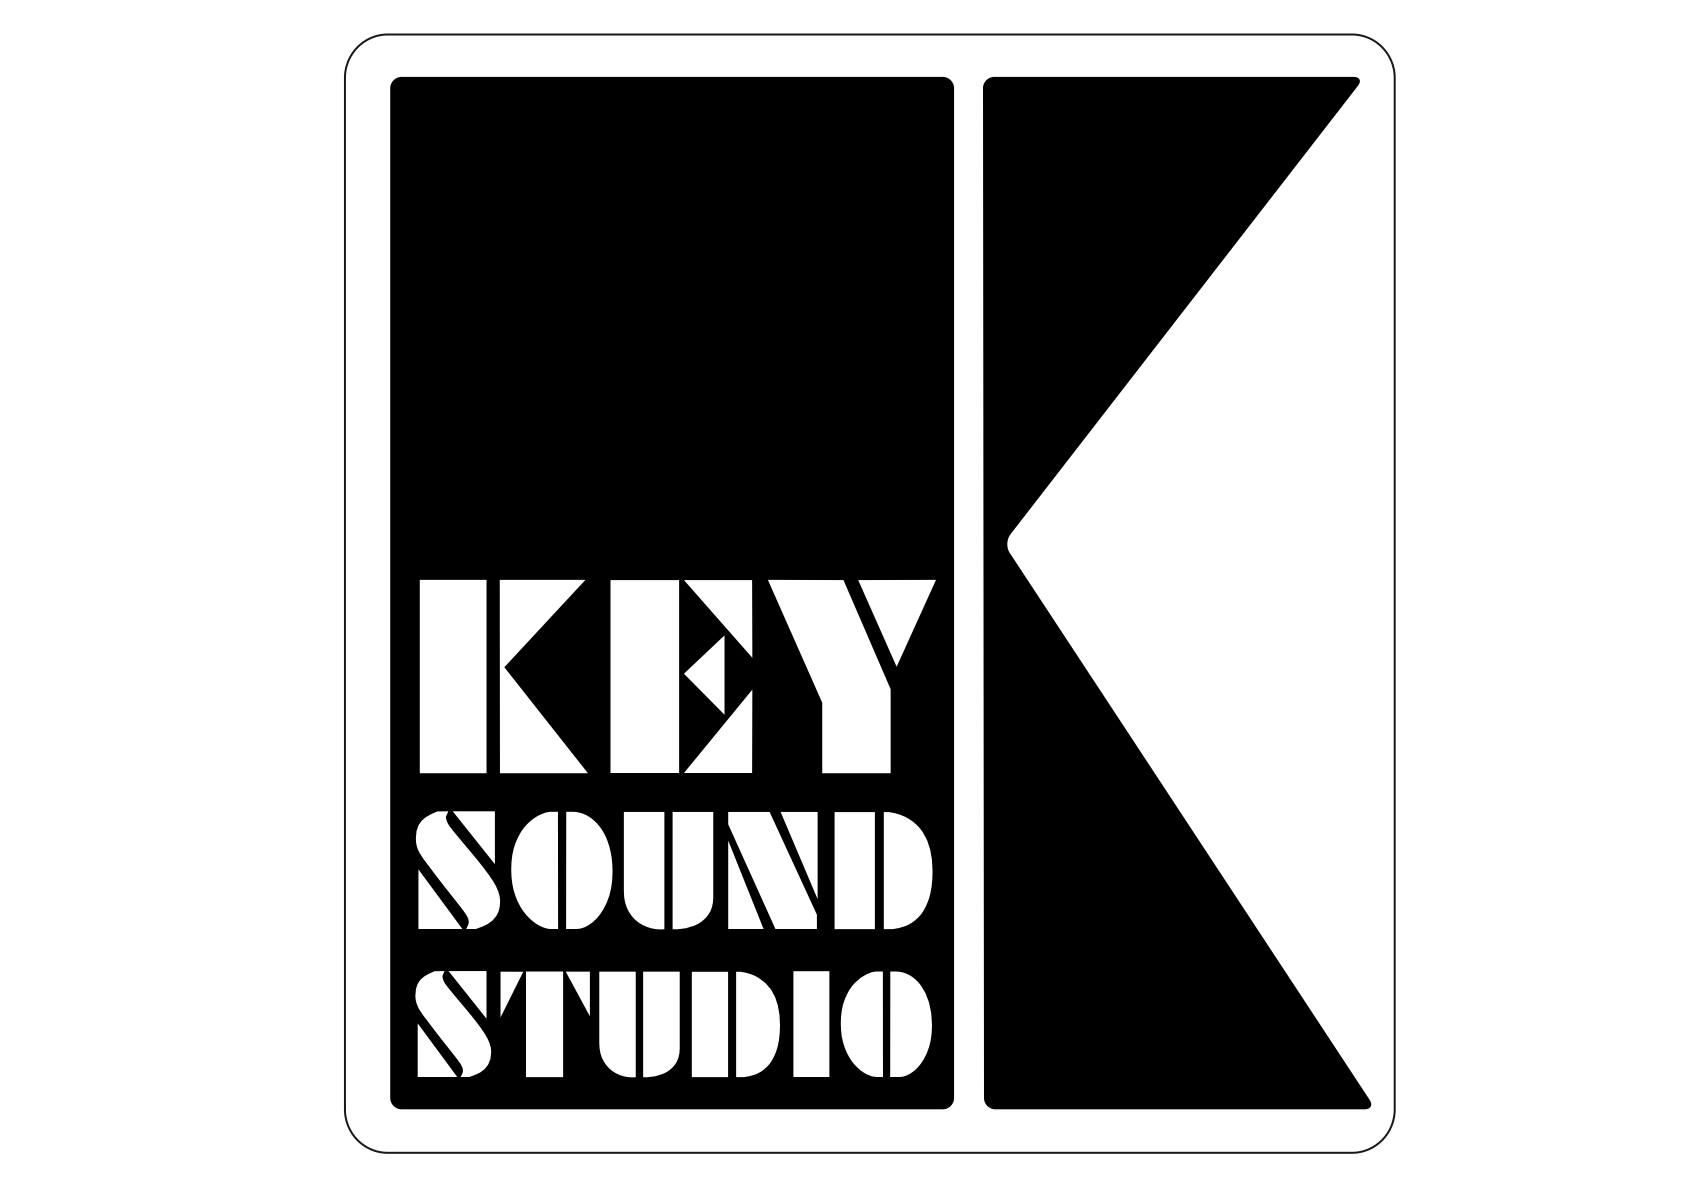 keysound-studio